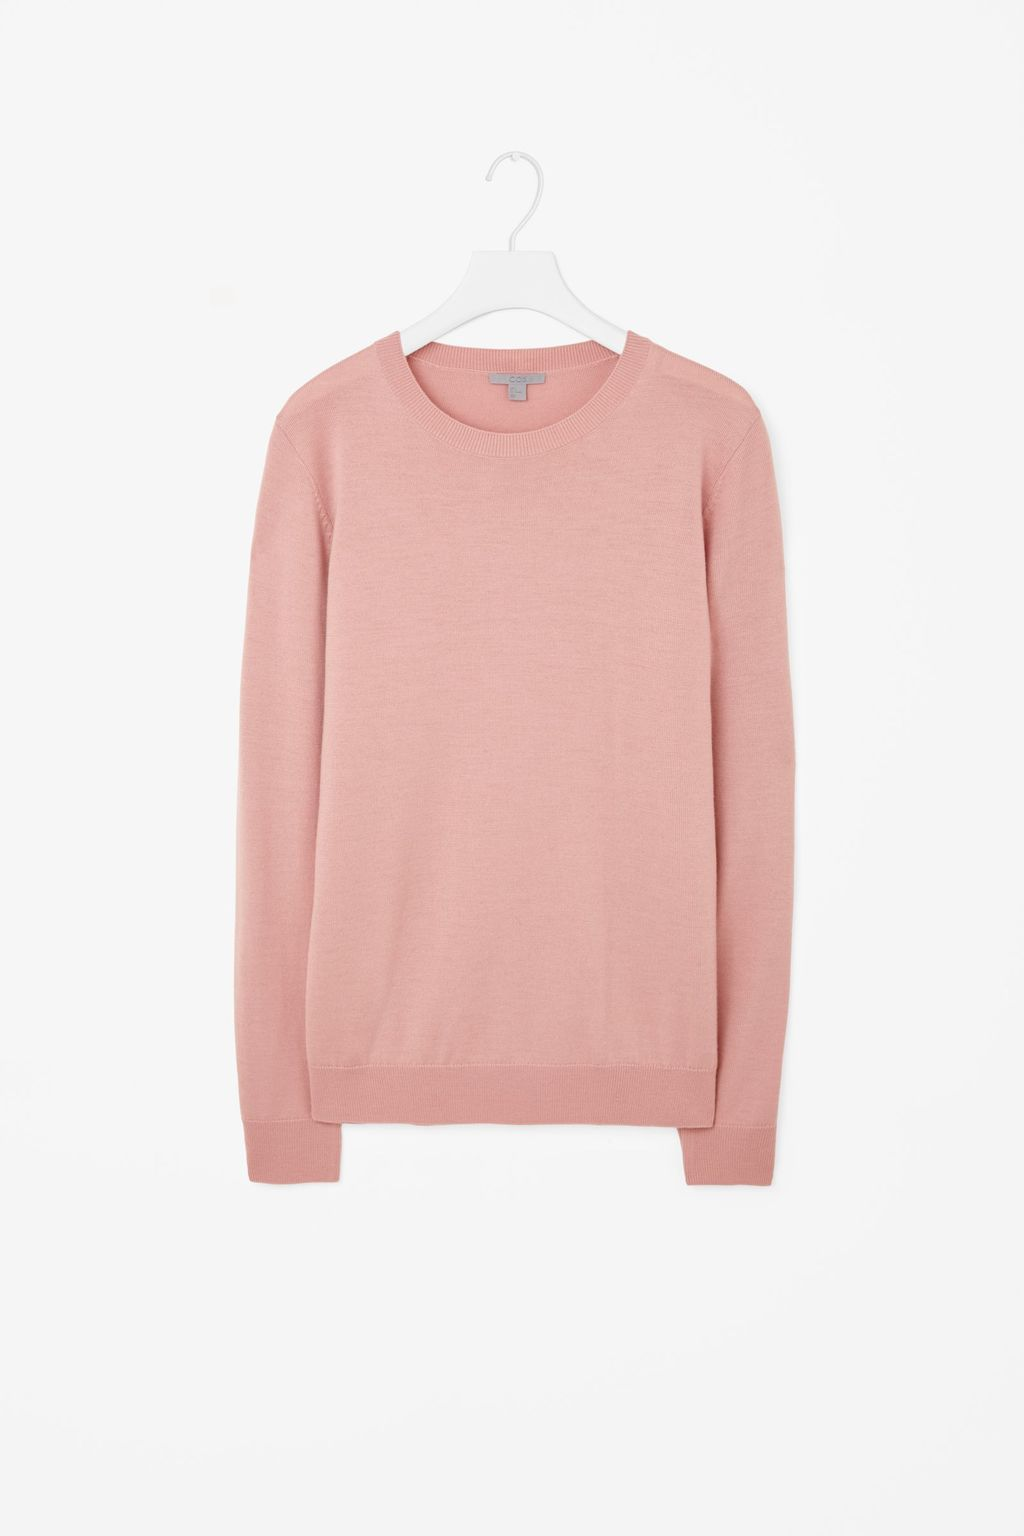 Round Neck Knit Jumper - pattern: plain; length: below the bottom; style: standard; predominant colour: pink; occasions: casual, creative work; fibres: wool - 100%; fit: loose; neckline: crew; sleeve length: long sleeve; sleeve style: standard; texture group: knits/crochet; pattern type: knitted - fine stitch; season: a/w 2015; wardrobe: highlight